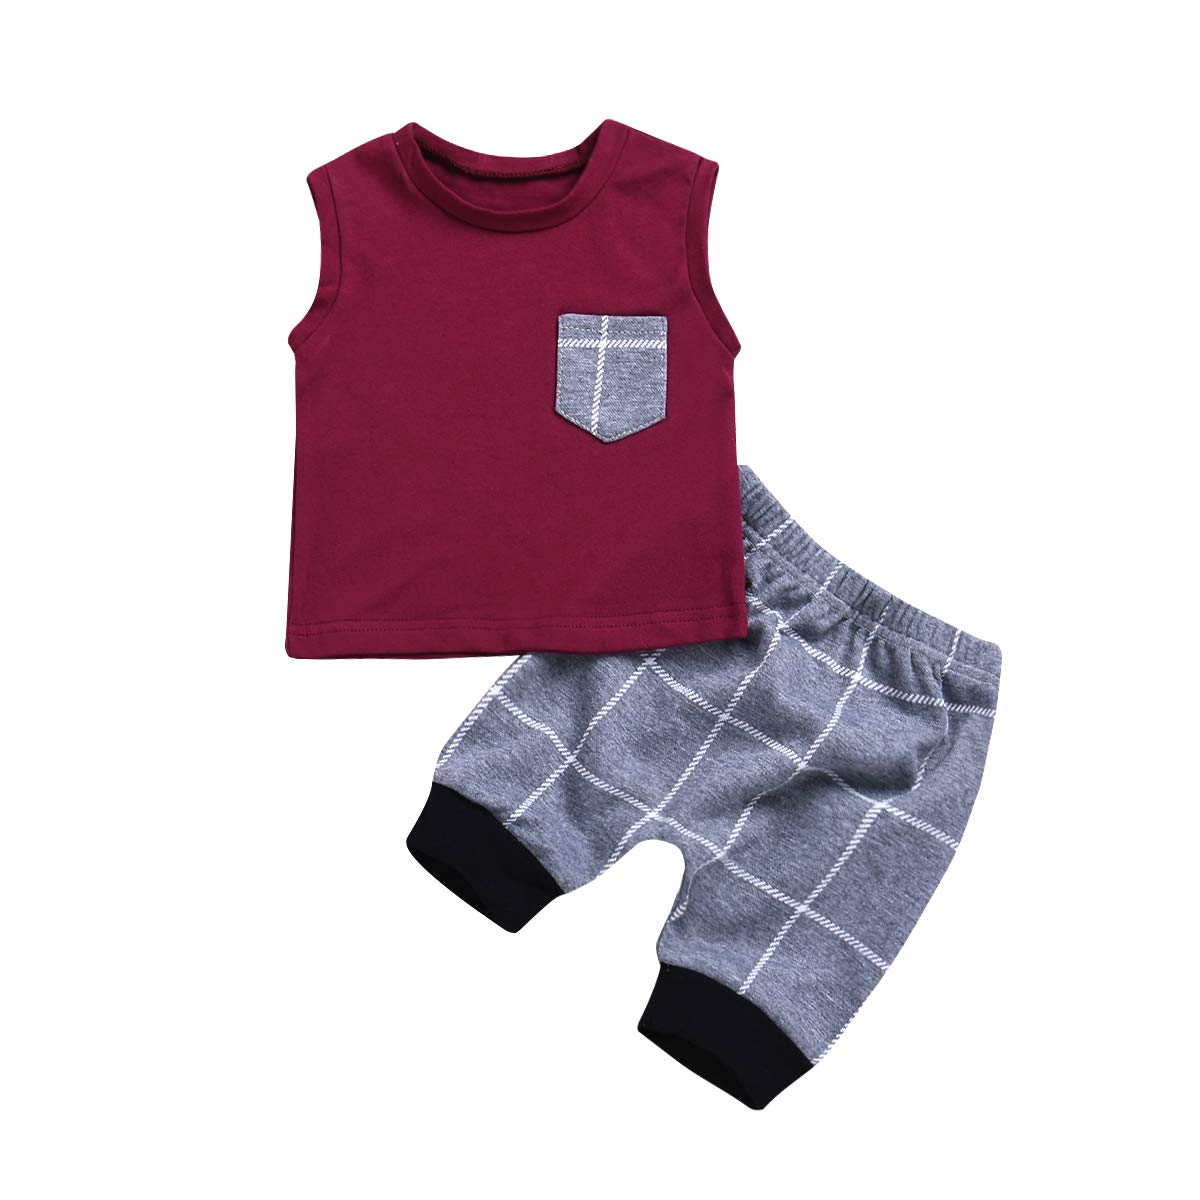 Baby Boys Outfits Vest Tops +Shorts,Plaid Pocket Romper Long Sleeve Top +Striped Pants Clothing Set Winter Autumn